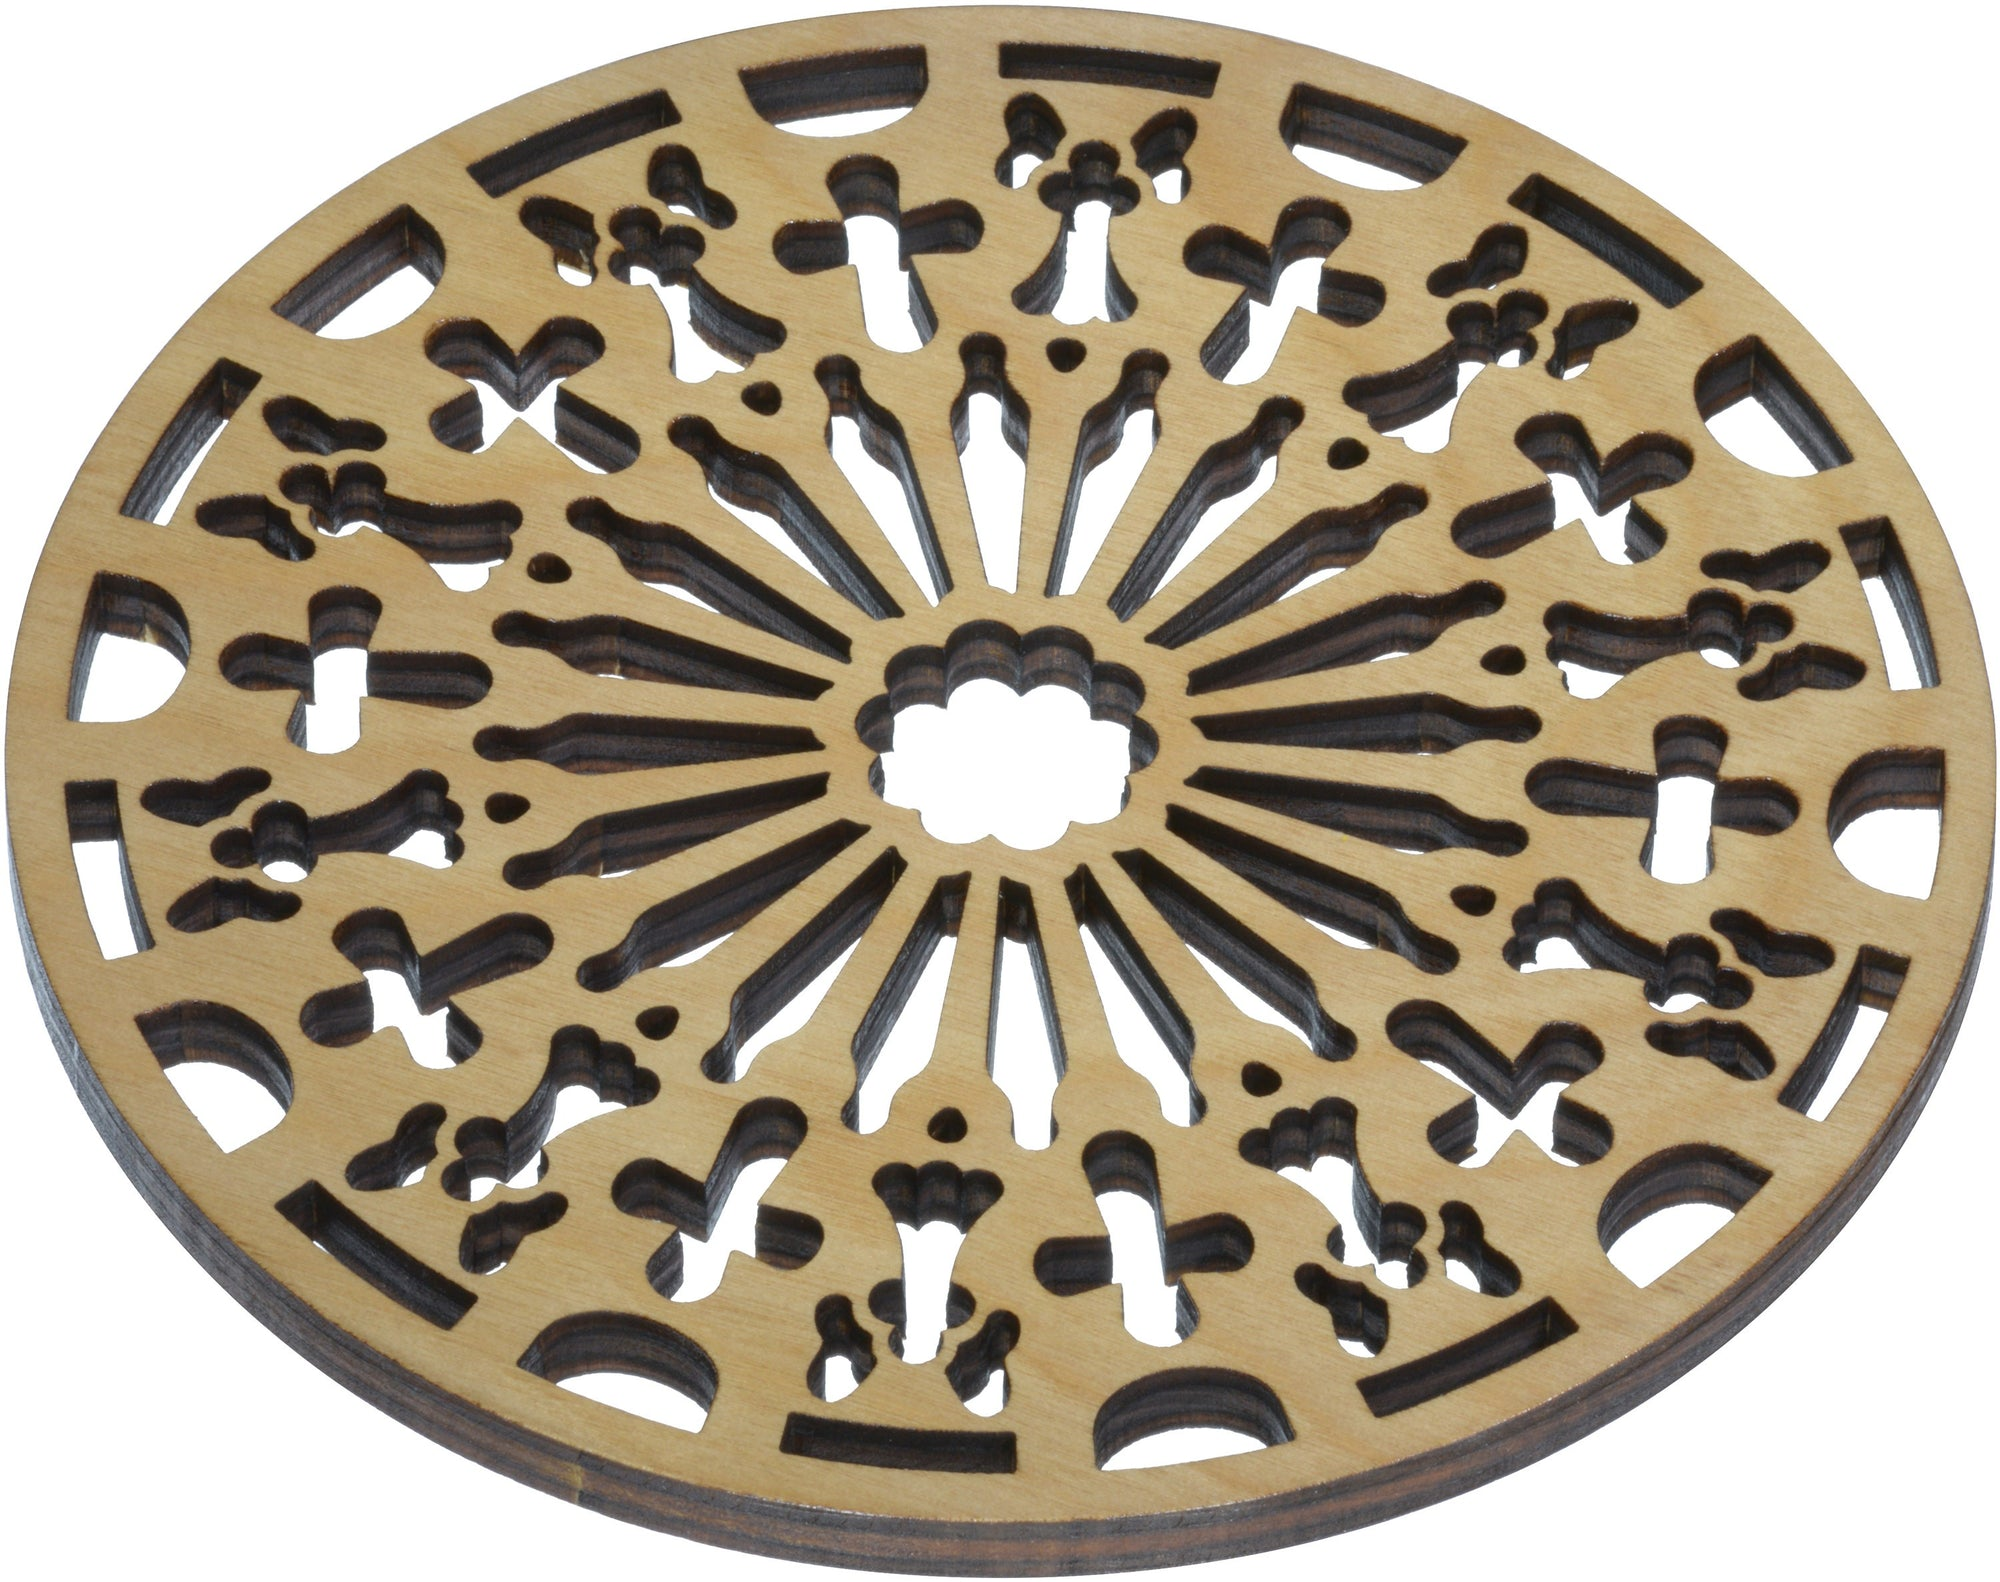 Cathedral Solace Trivet - Heart of the Home PA